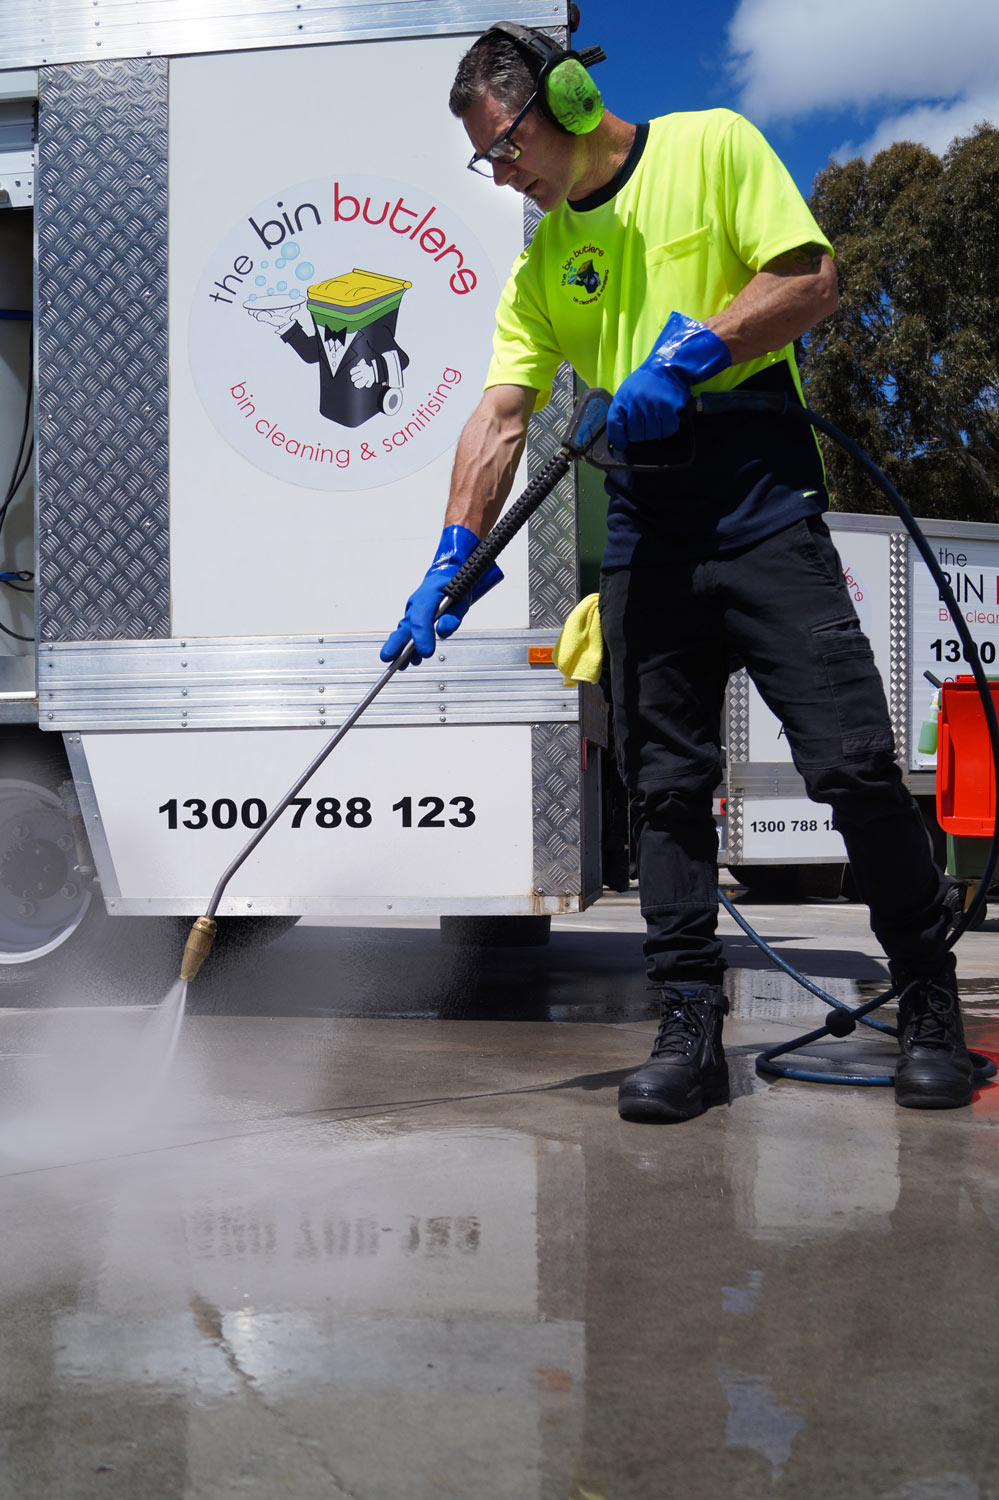 The-Bin-Butlers-Franchise-concrete-cleaning